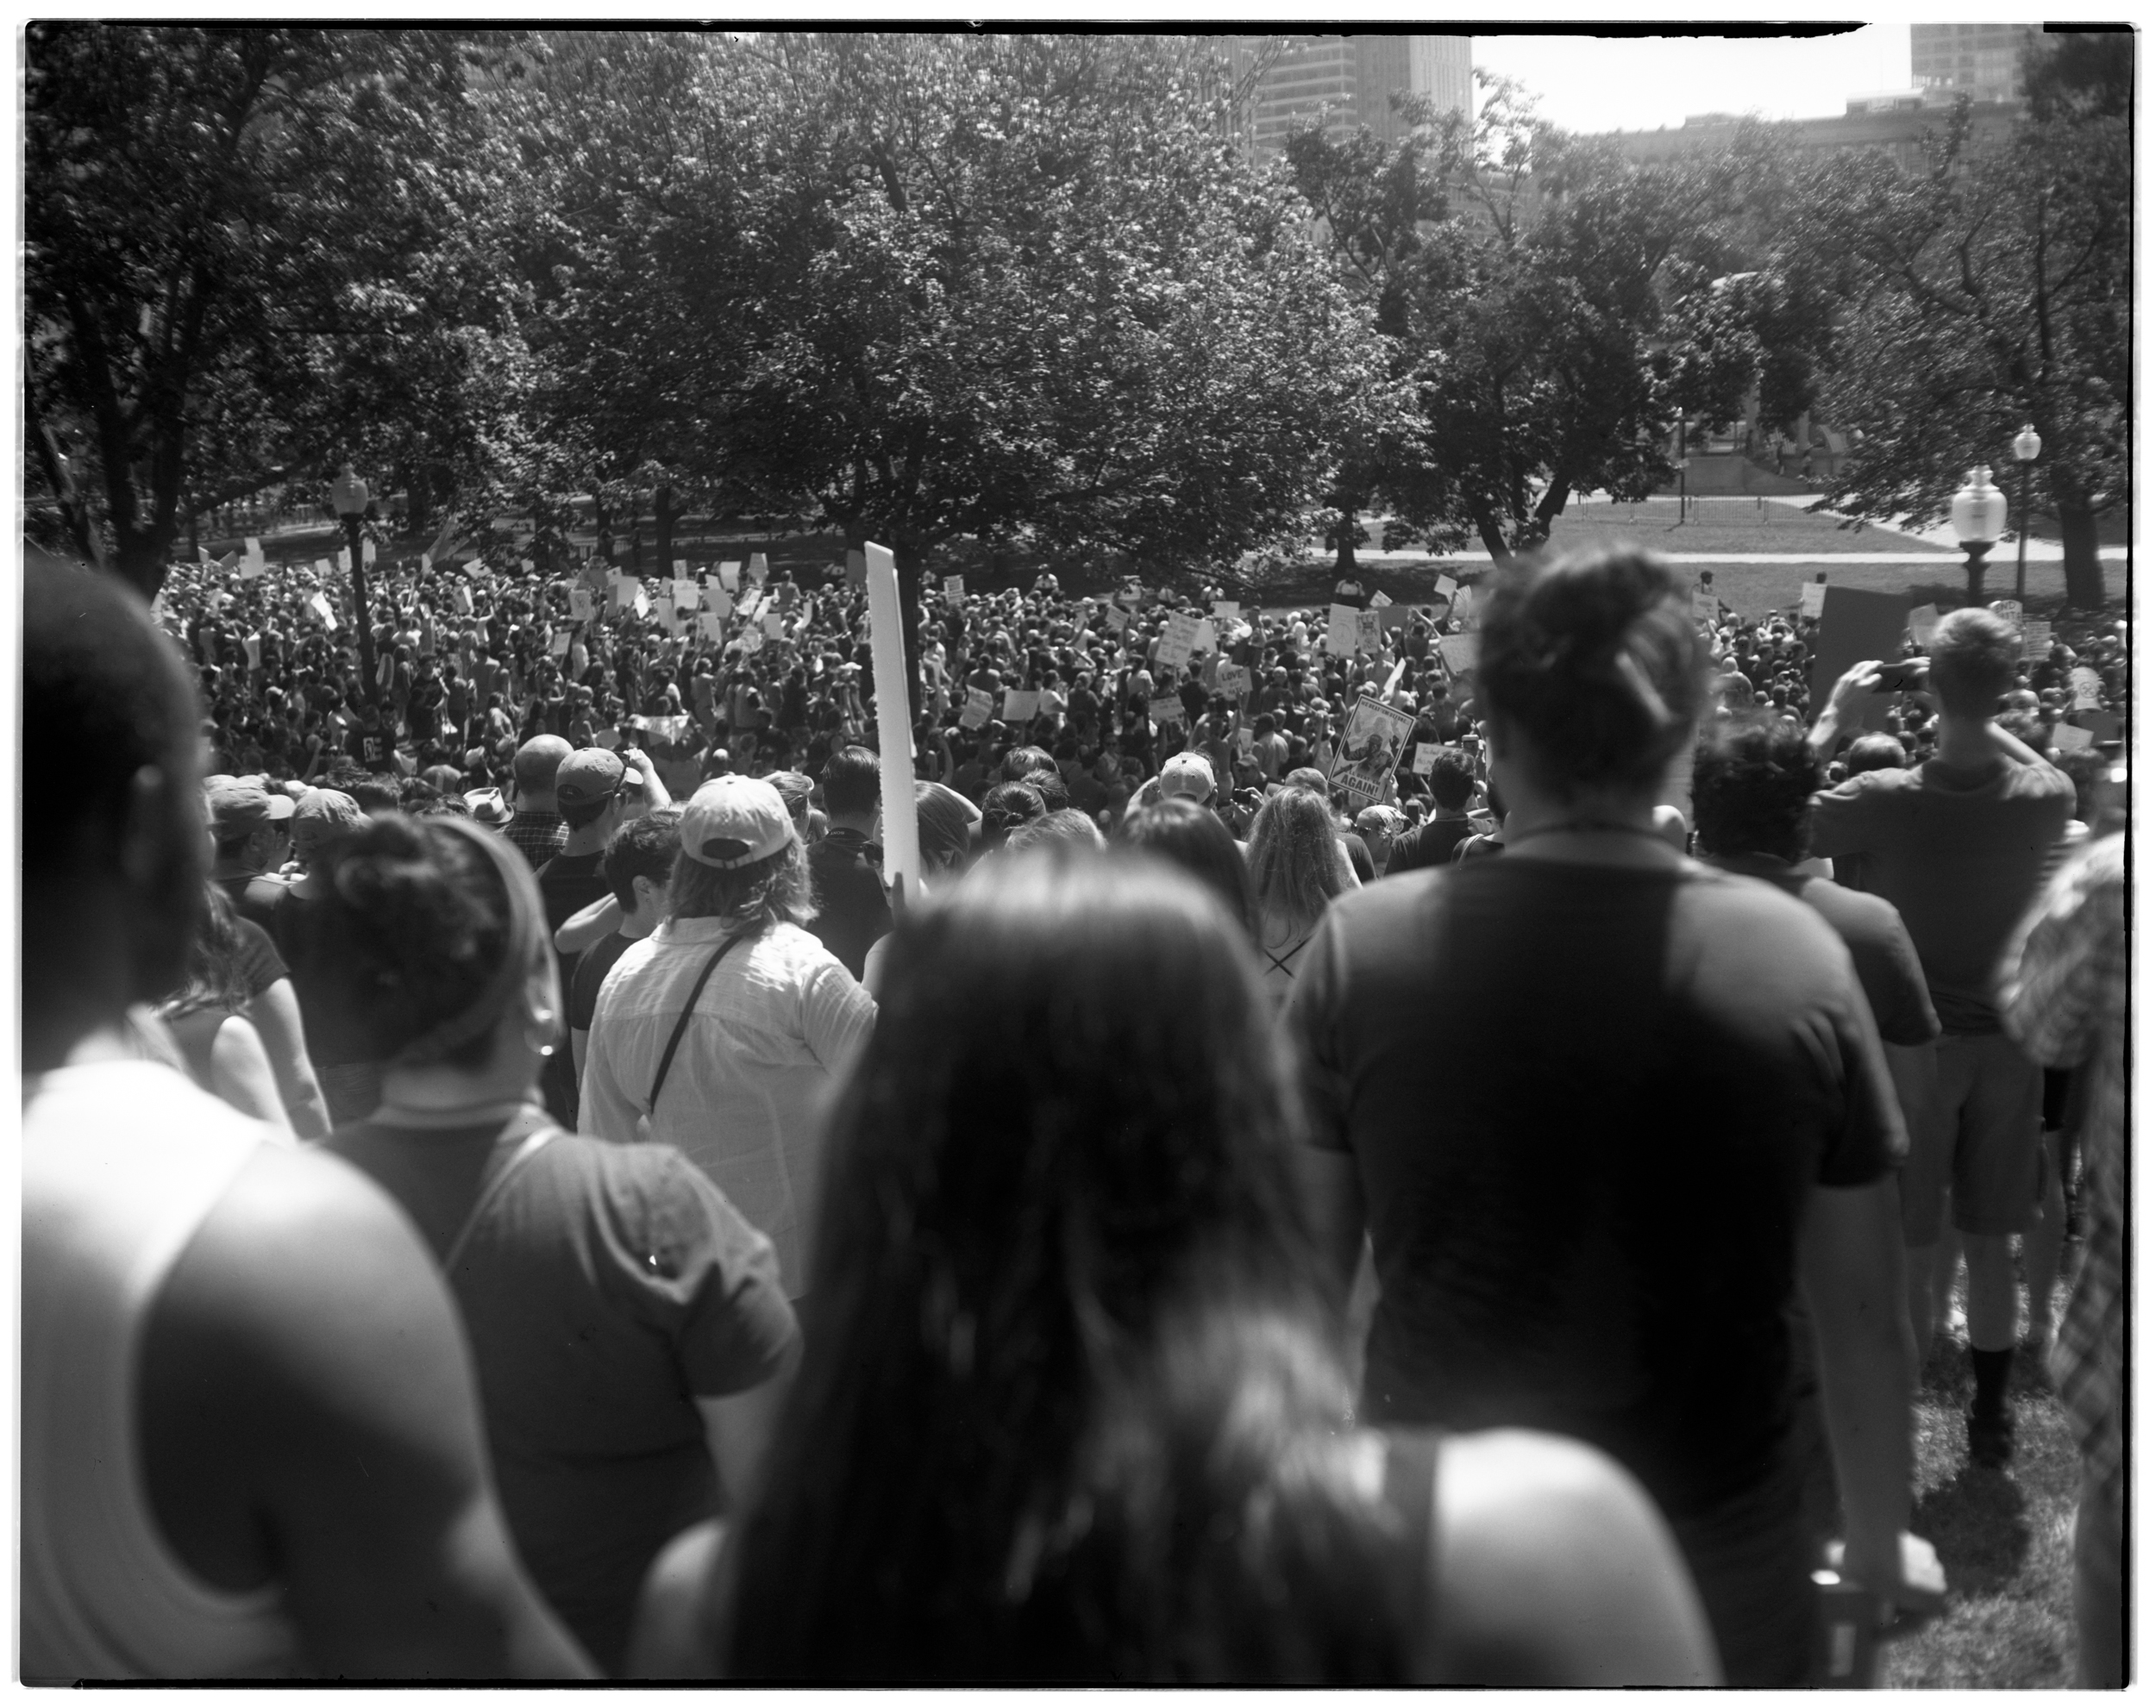 """On 19th of August, 2017, a """"free speech"""" rally in Boston featuring white-supremacist speakers was met with a massive counter-protest.  Over 30,000 showed up on the Boston Common to stand against white supremacy."""